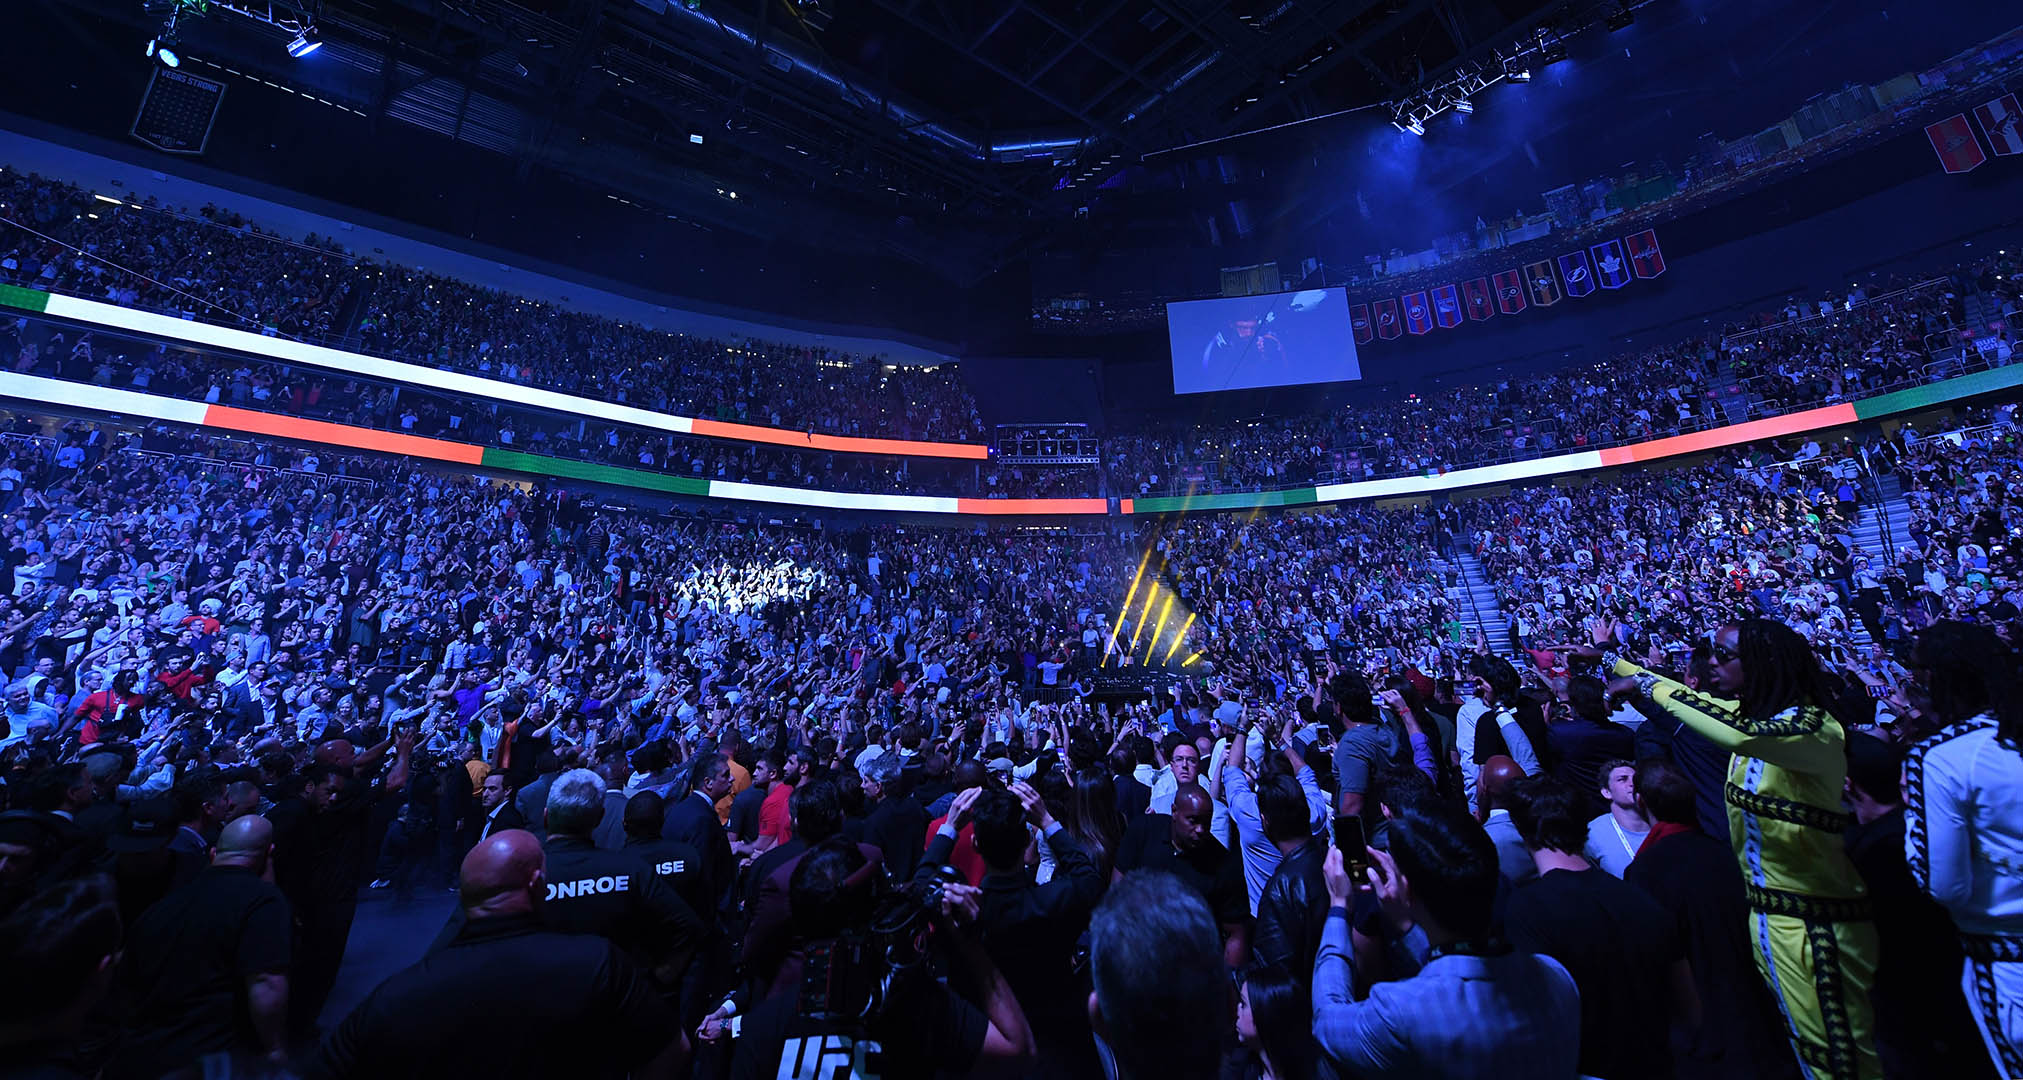 A general view of the crowd during the UFC 229 event inside T-Mobile Arena on October 6, 2018 in Las Vegas, Nevada. (Photo by Josh Hedges/Zuffa LLC/Zuffa LLC)